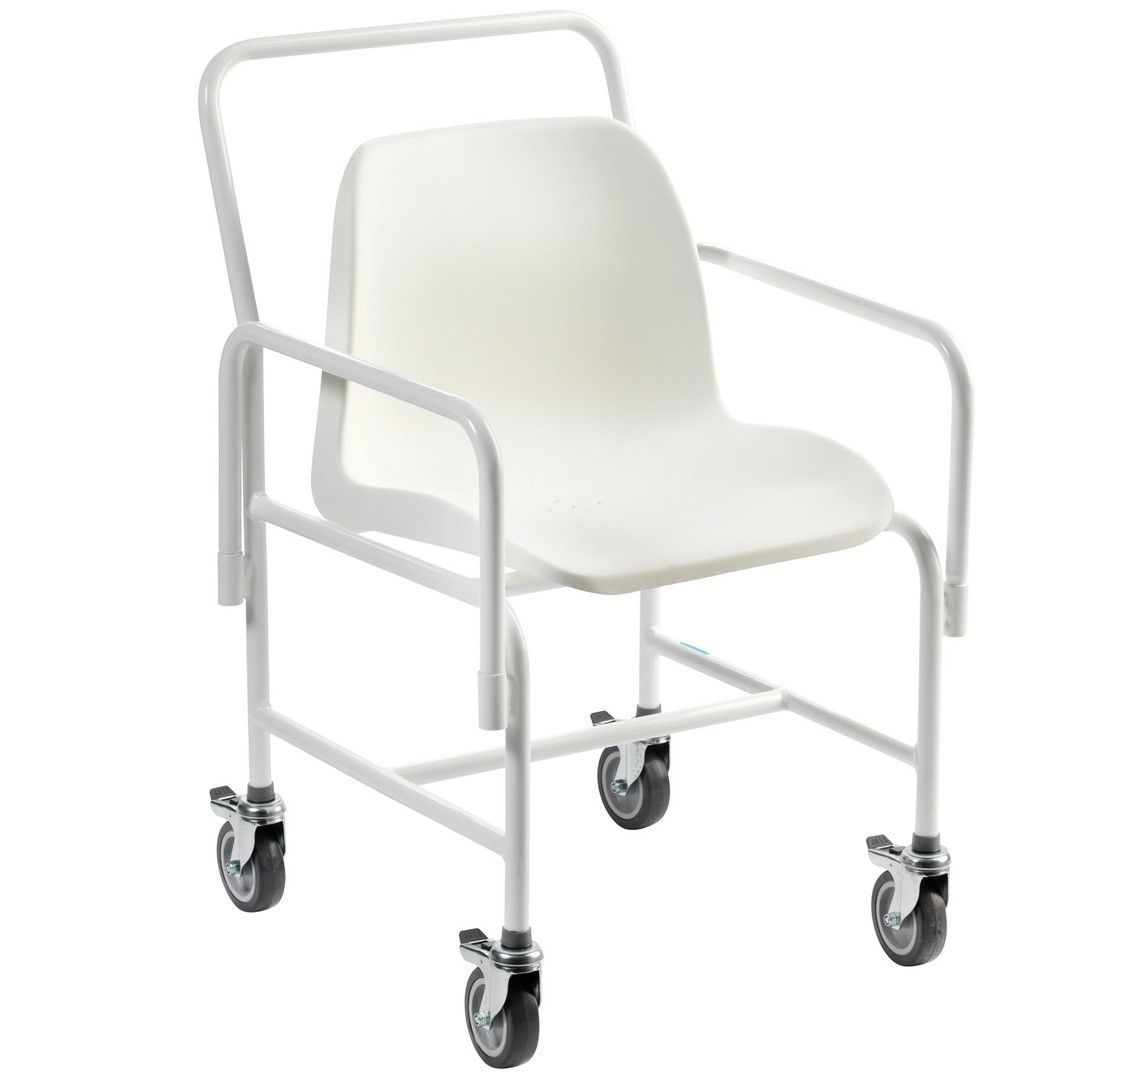 Hallaton wheeled shower chair shown from the side angle with brakes on each wheel